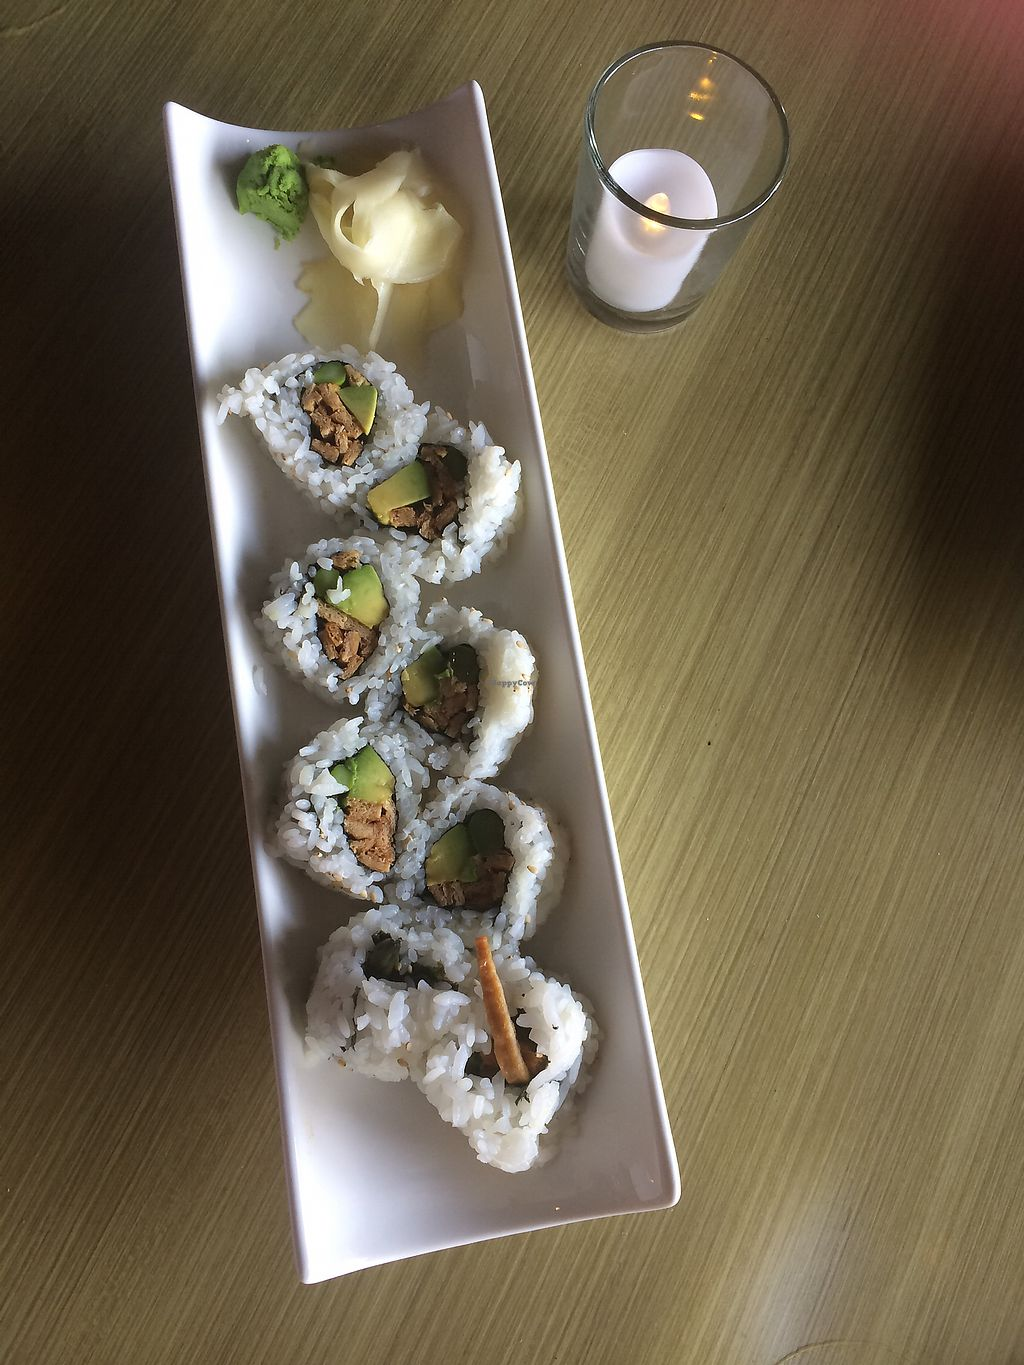 """Photo of Papaya Asian Kitchen  by <a href=""""/members/profile/fruitiJulie"""">fruitiJulie</a> <br/>Buddha Roll  <br/> August 16, 2017  - <a href='/contact/abuse/image/98708/293097'>Report</a>"""